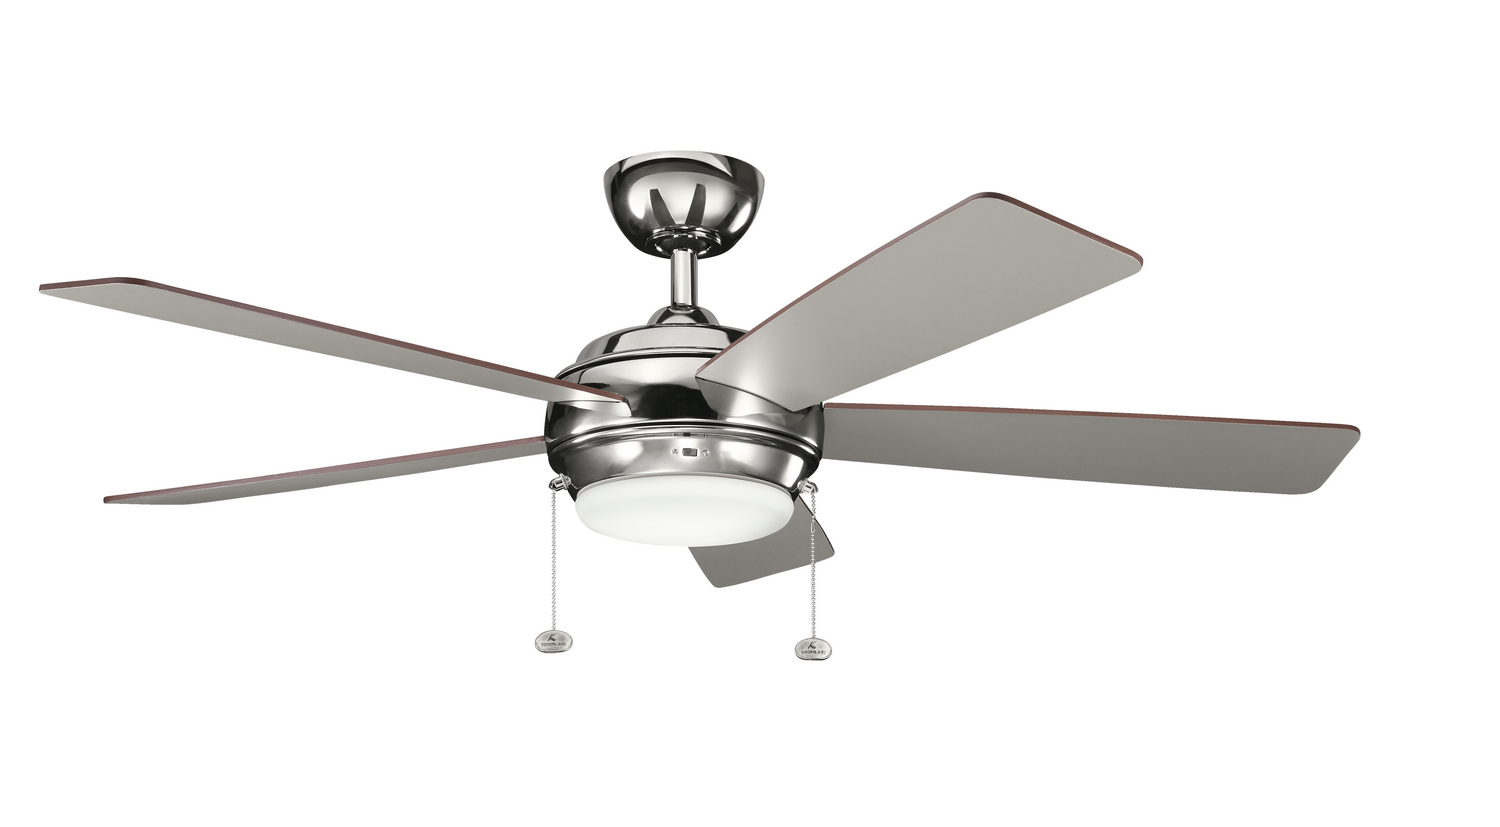 52 inchCeiling Fan from the Starkk collection by Kichler 300173PN